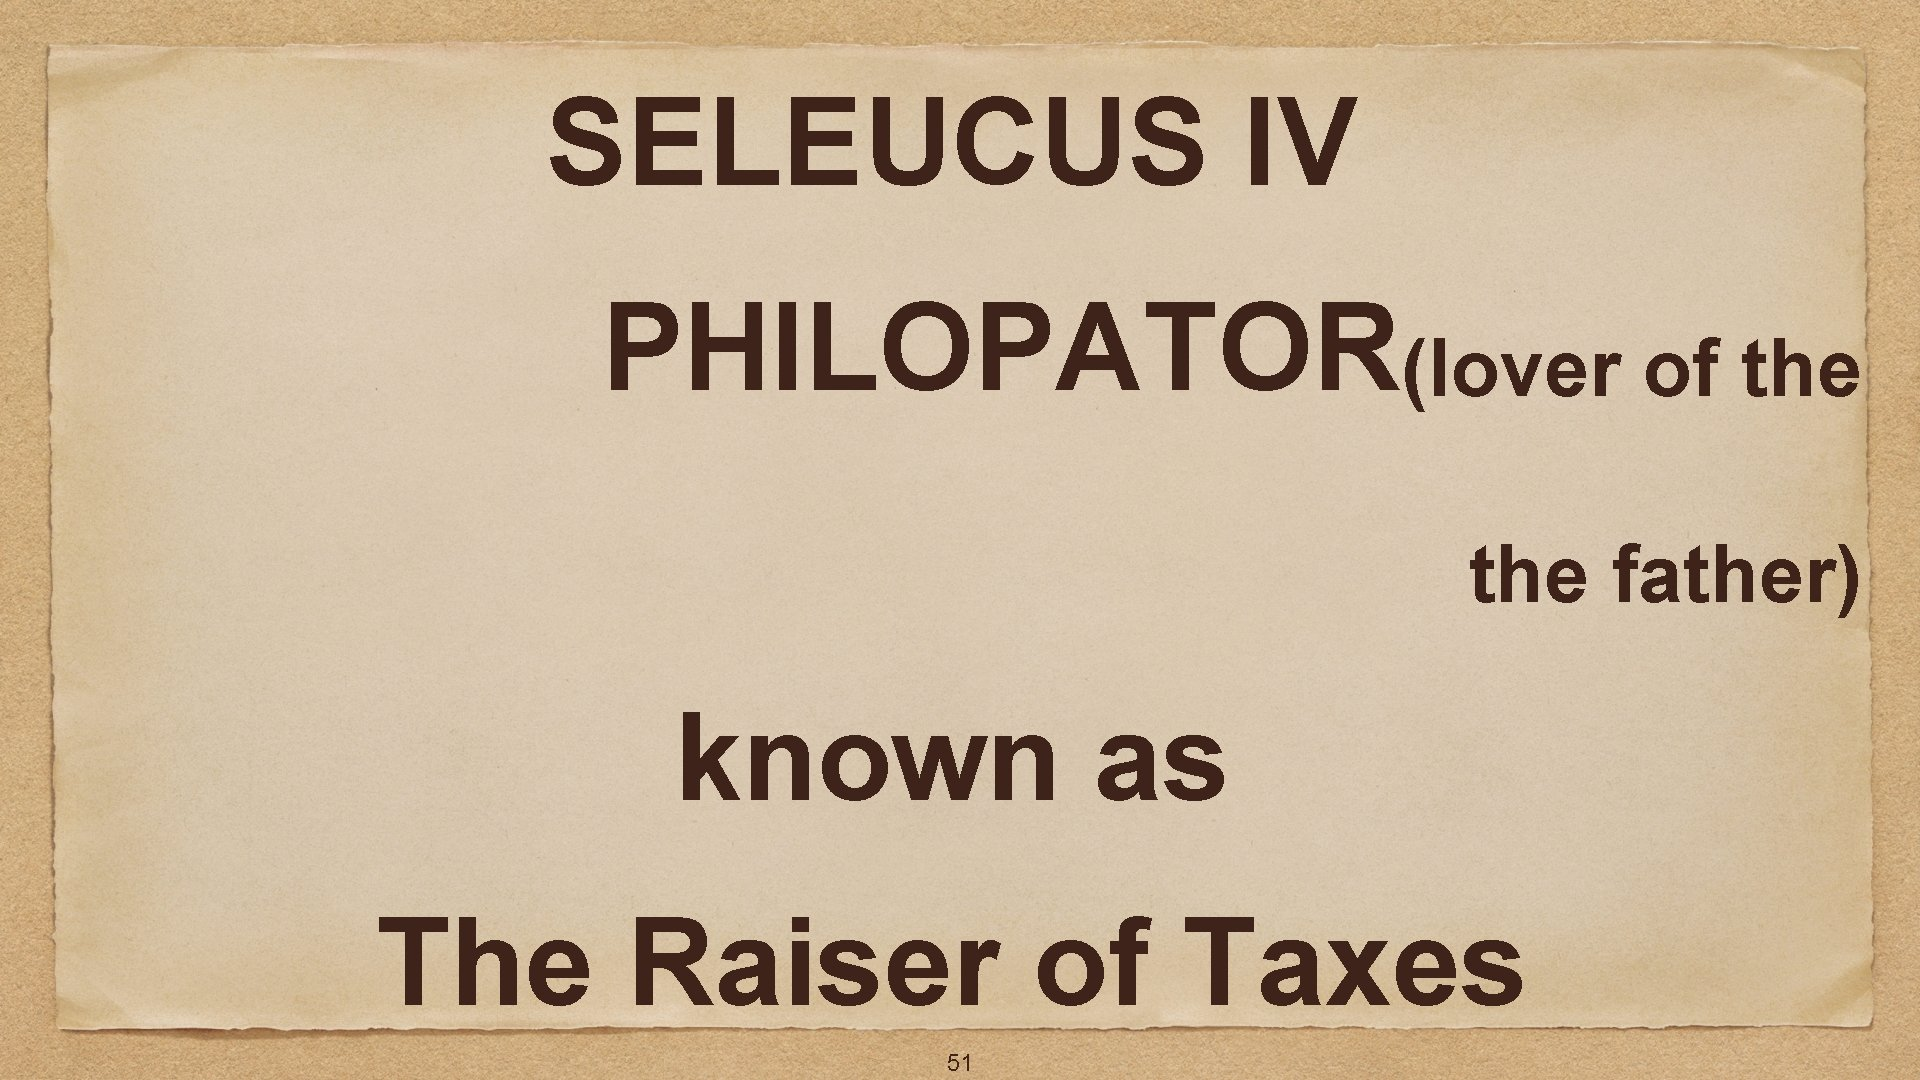 SELEUCUS IV PHILOPATOR(lover of the father) known as The Raiser of Taxes 51